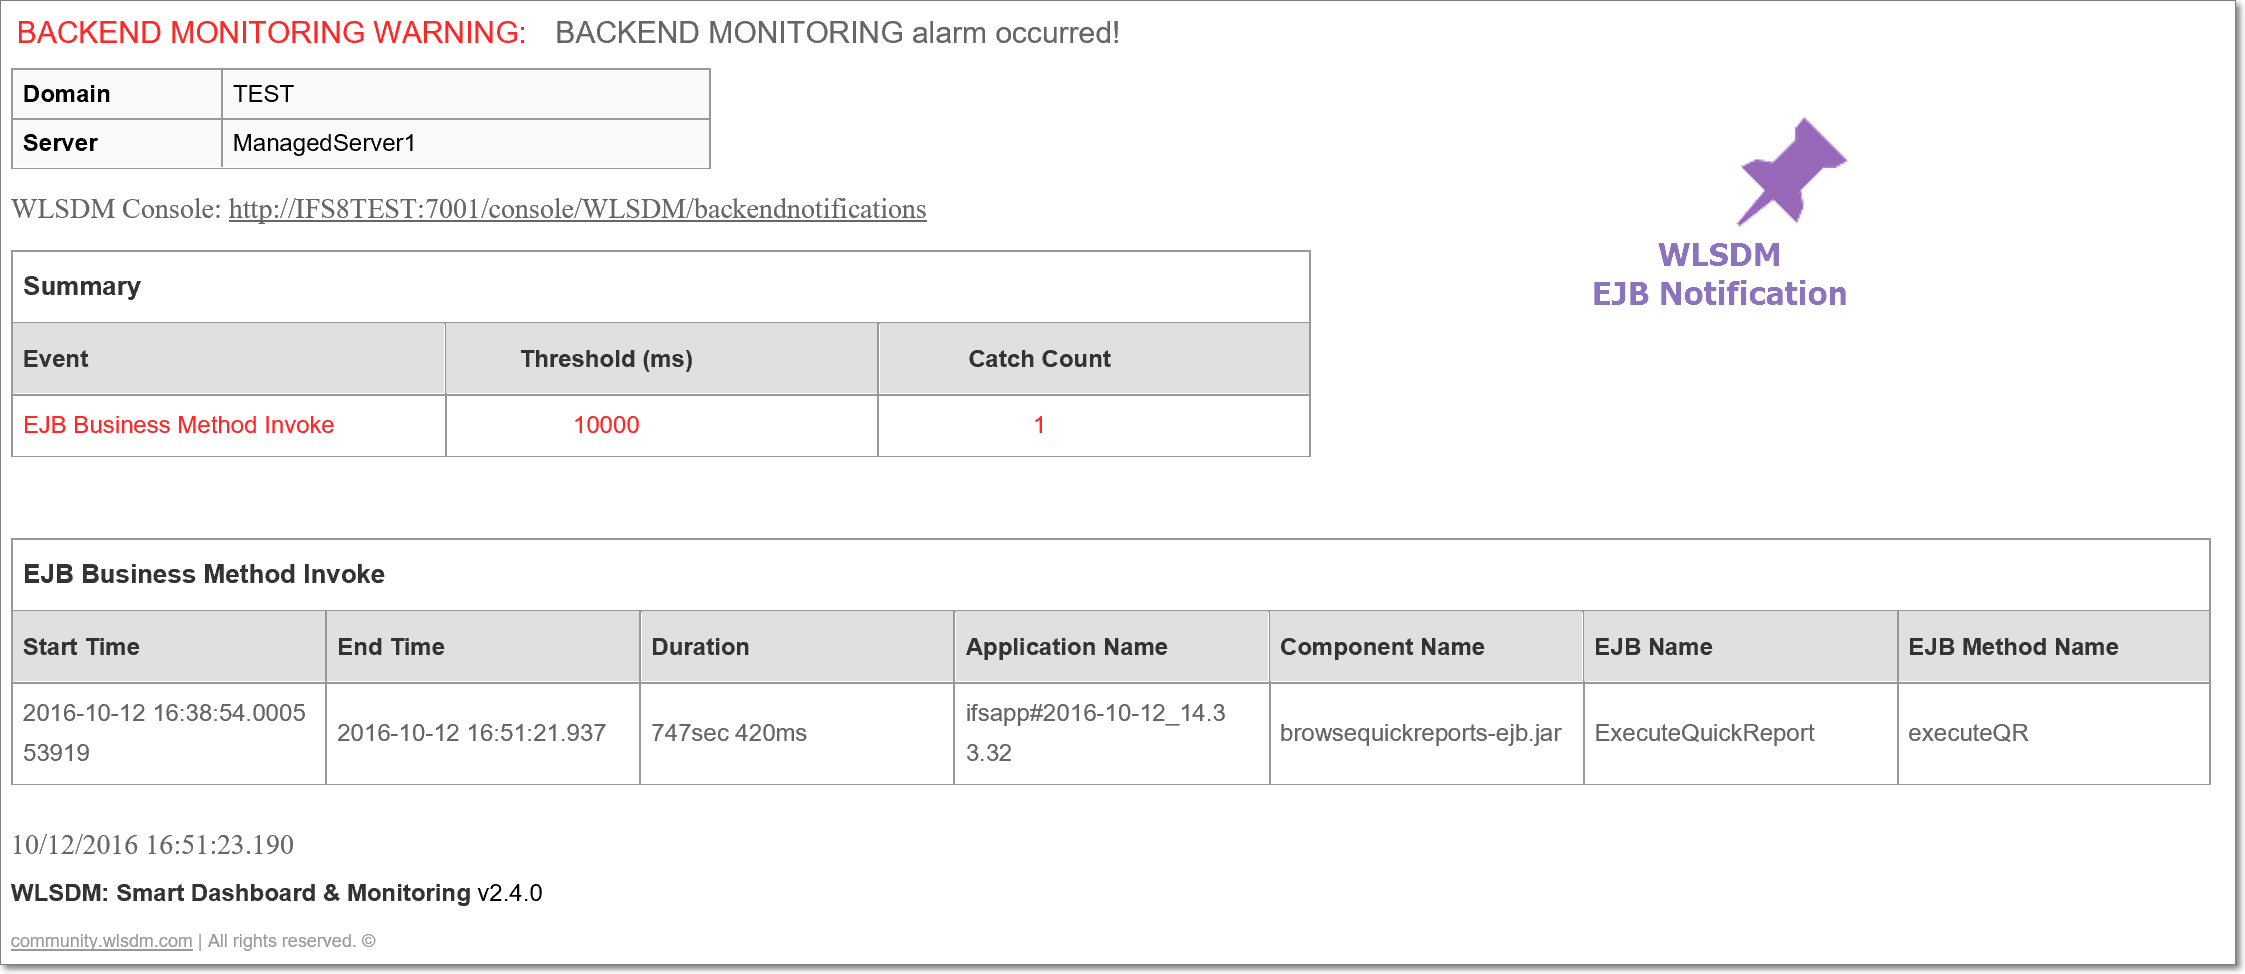 WLSDM: SQL Notification/ALARM for IFS Domains